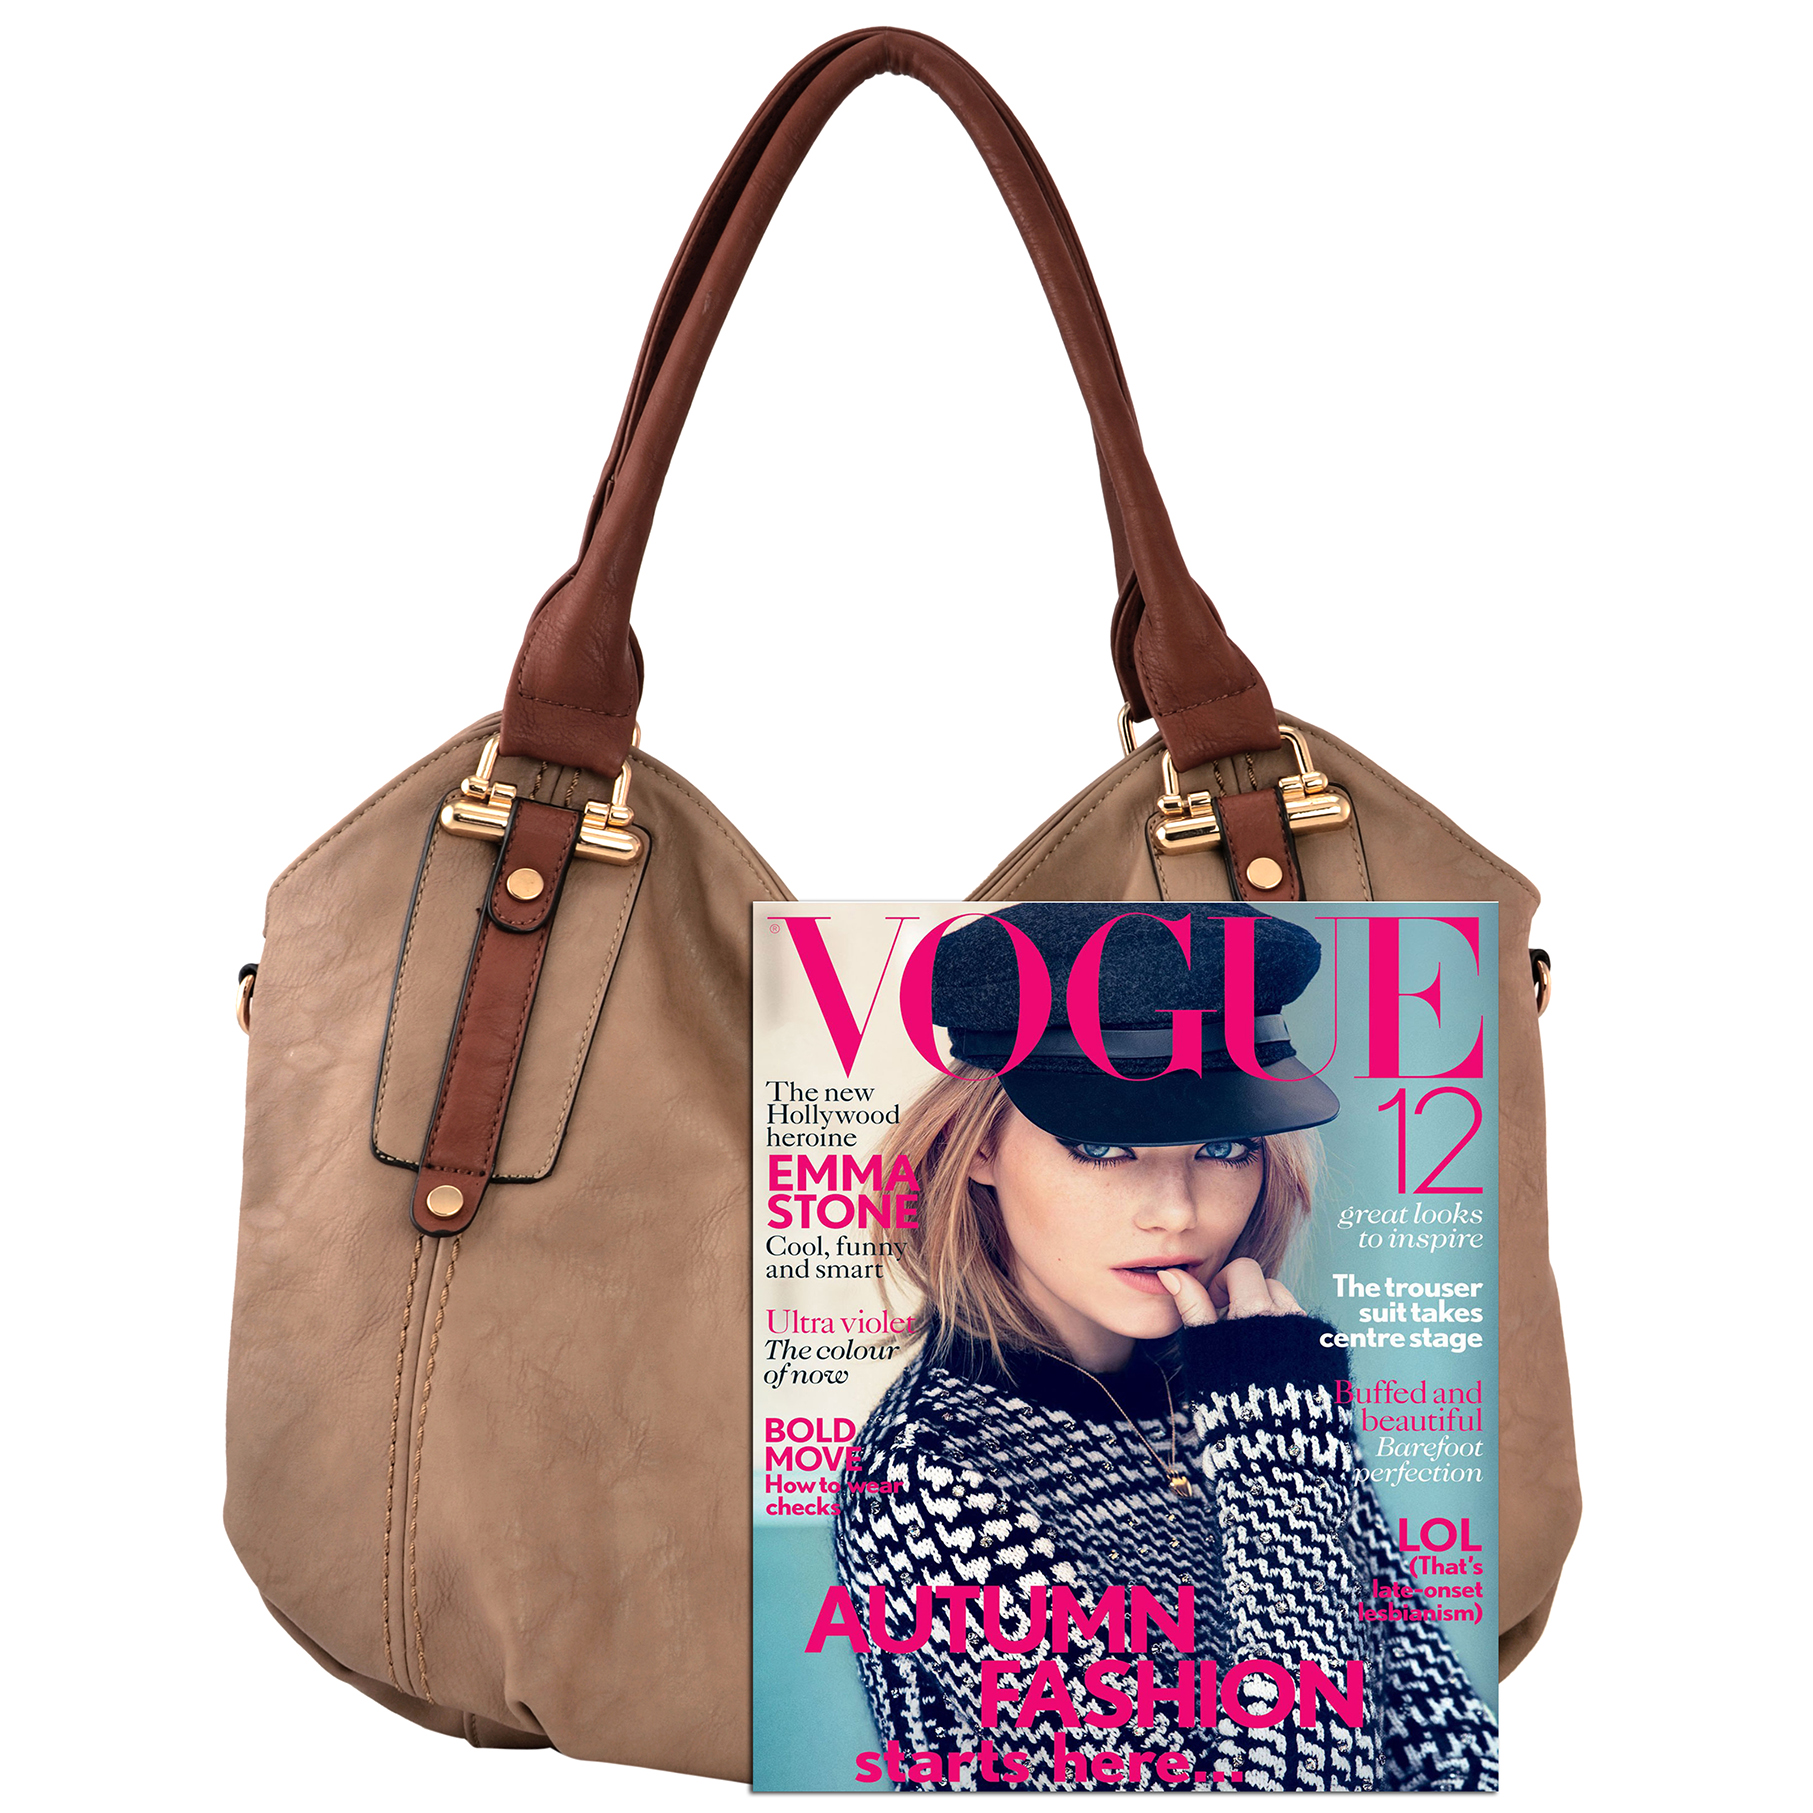 mg-collection-mimi-office-tote-style-handbag-jsh-yd-1225kh-5.jpg